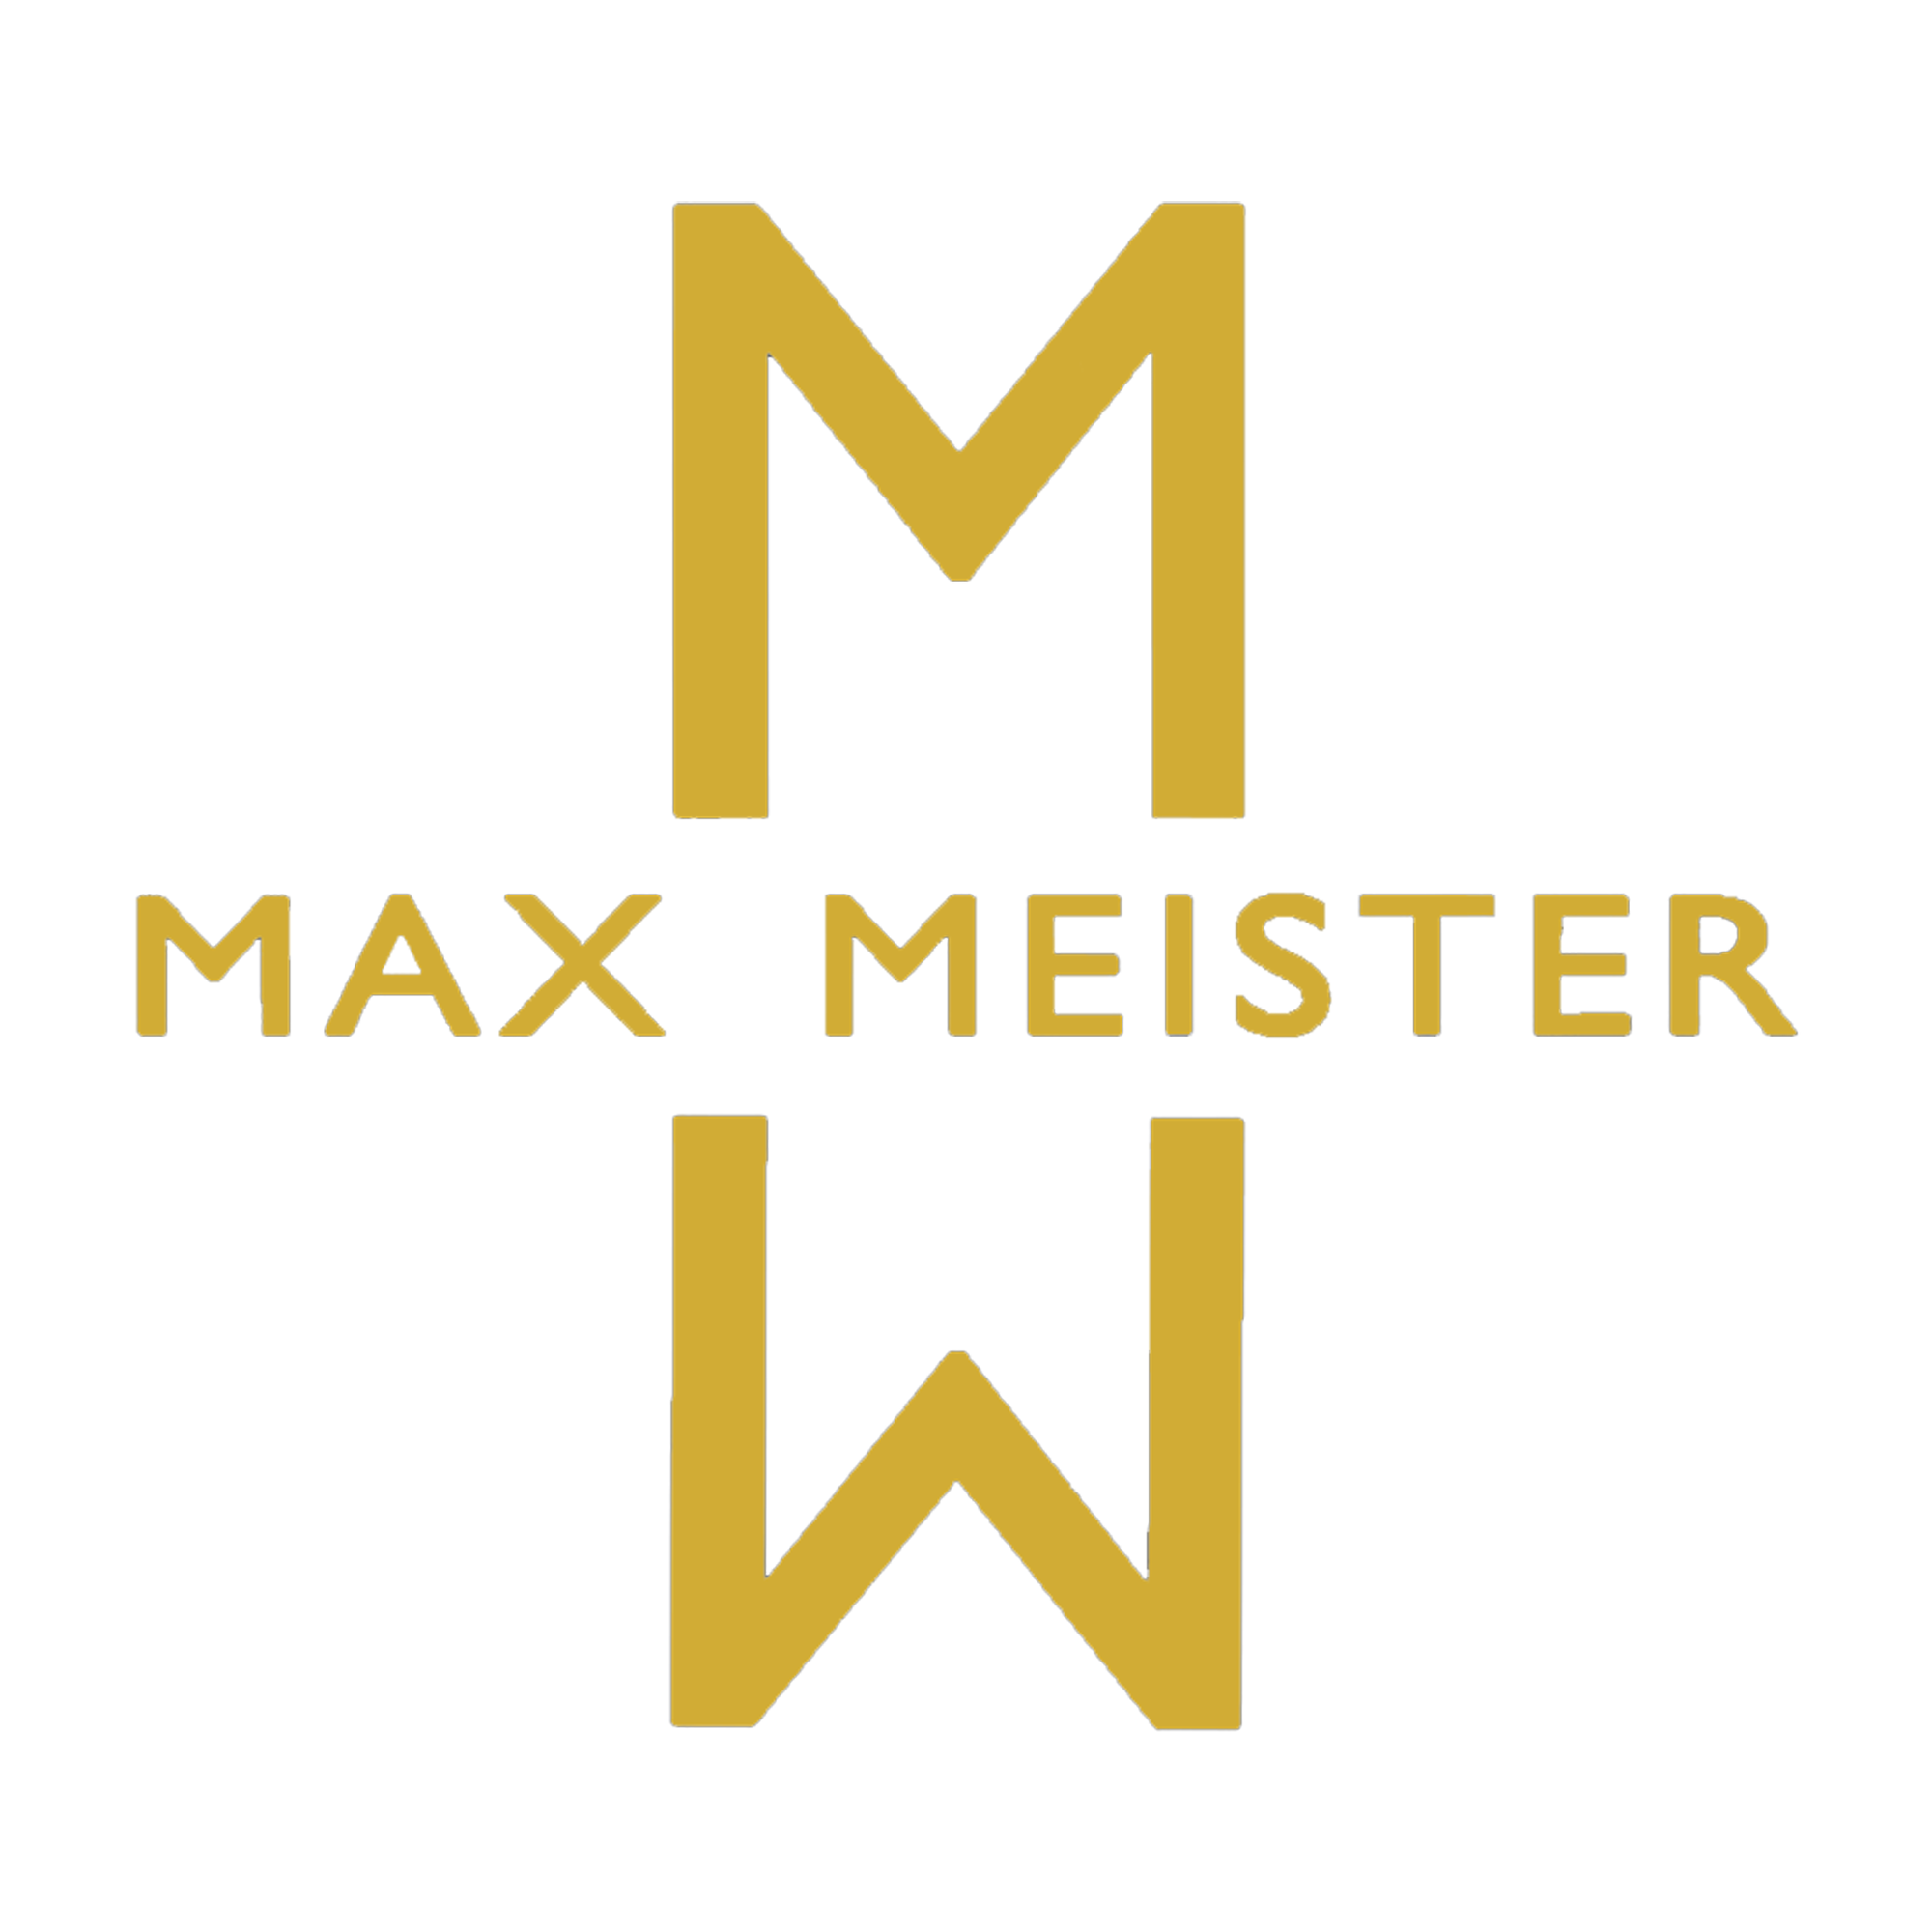 Max Meister